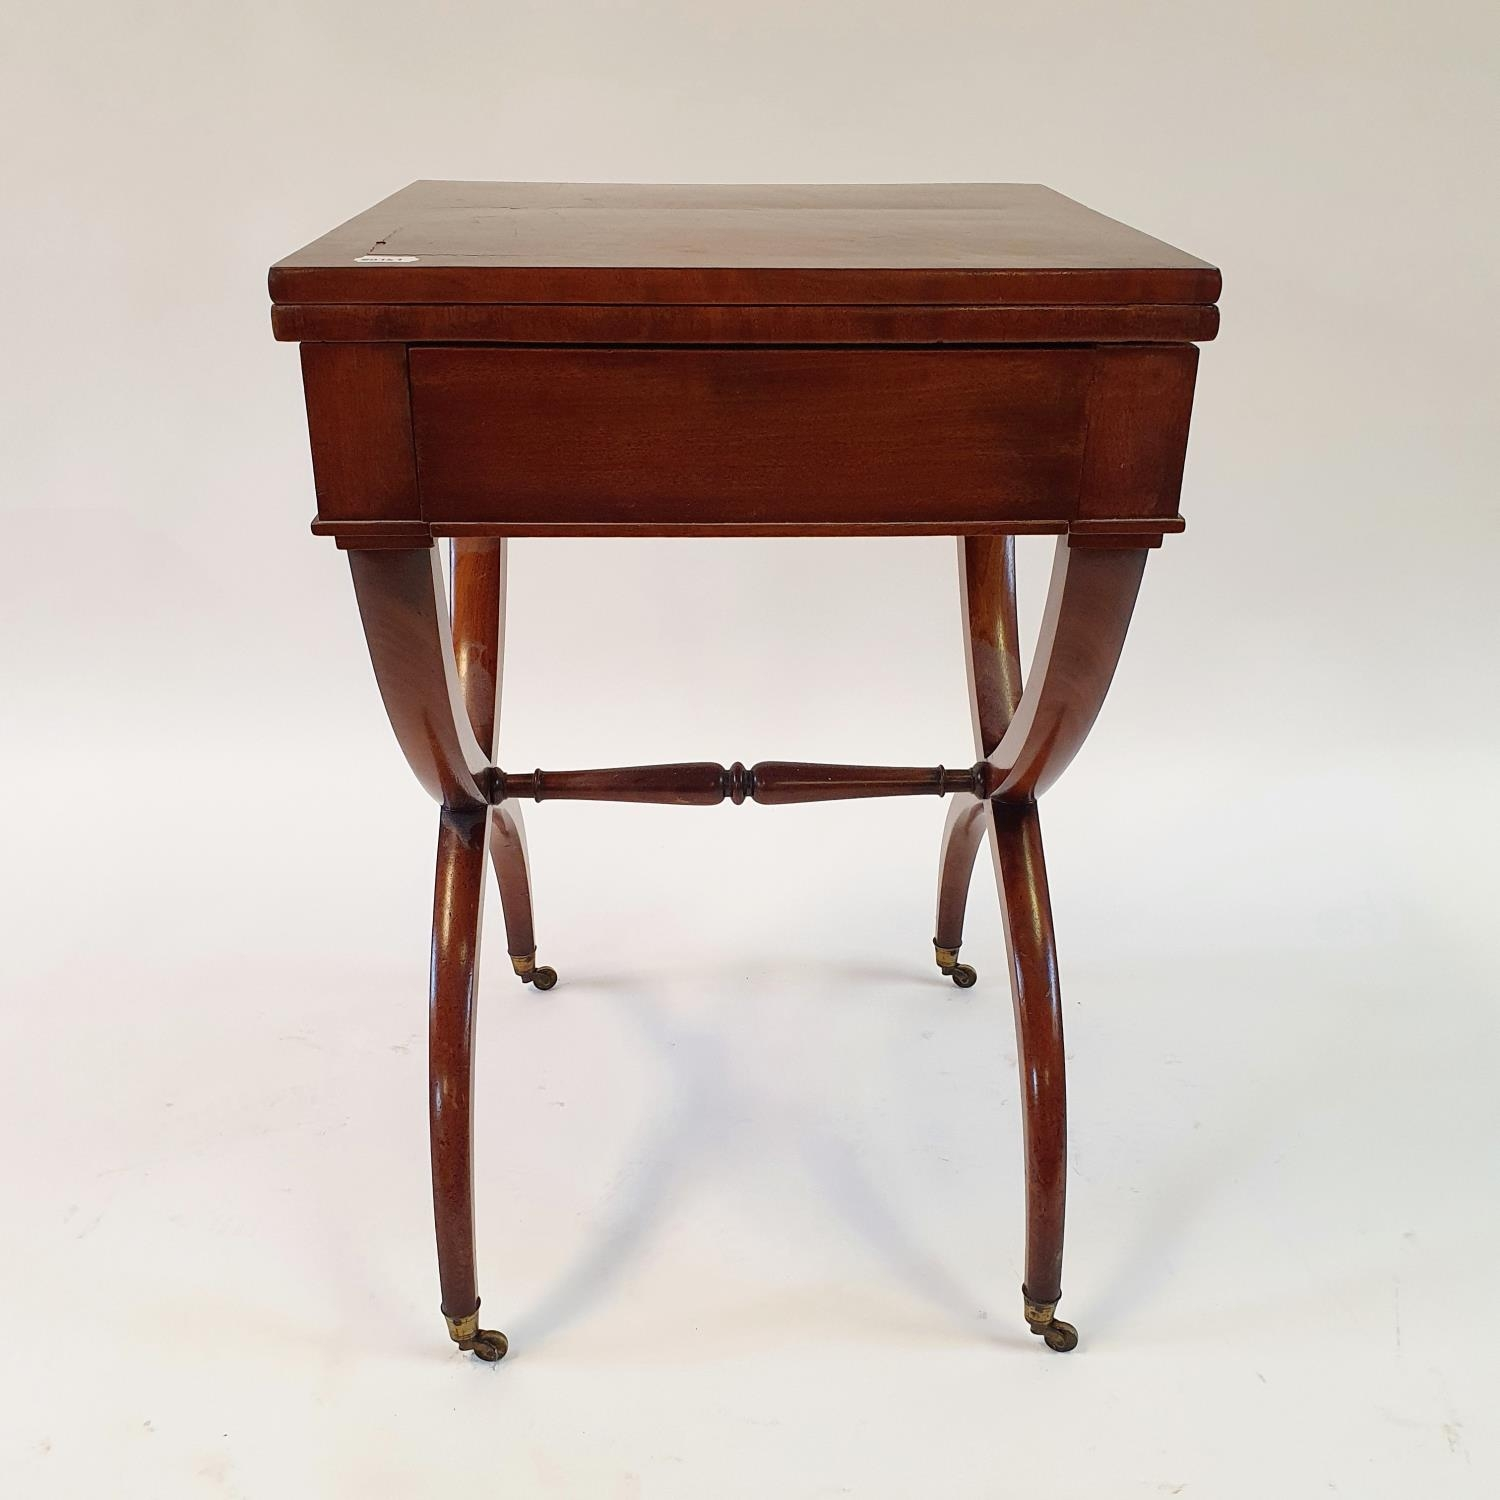 A 19th century mahogany campaign style desk, with folding top to reveal a tooled red leather writing